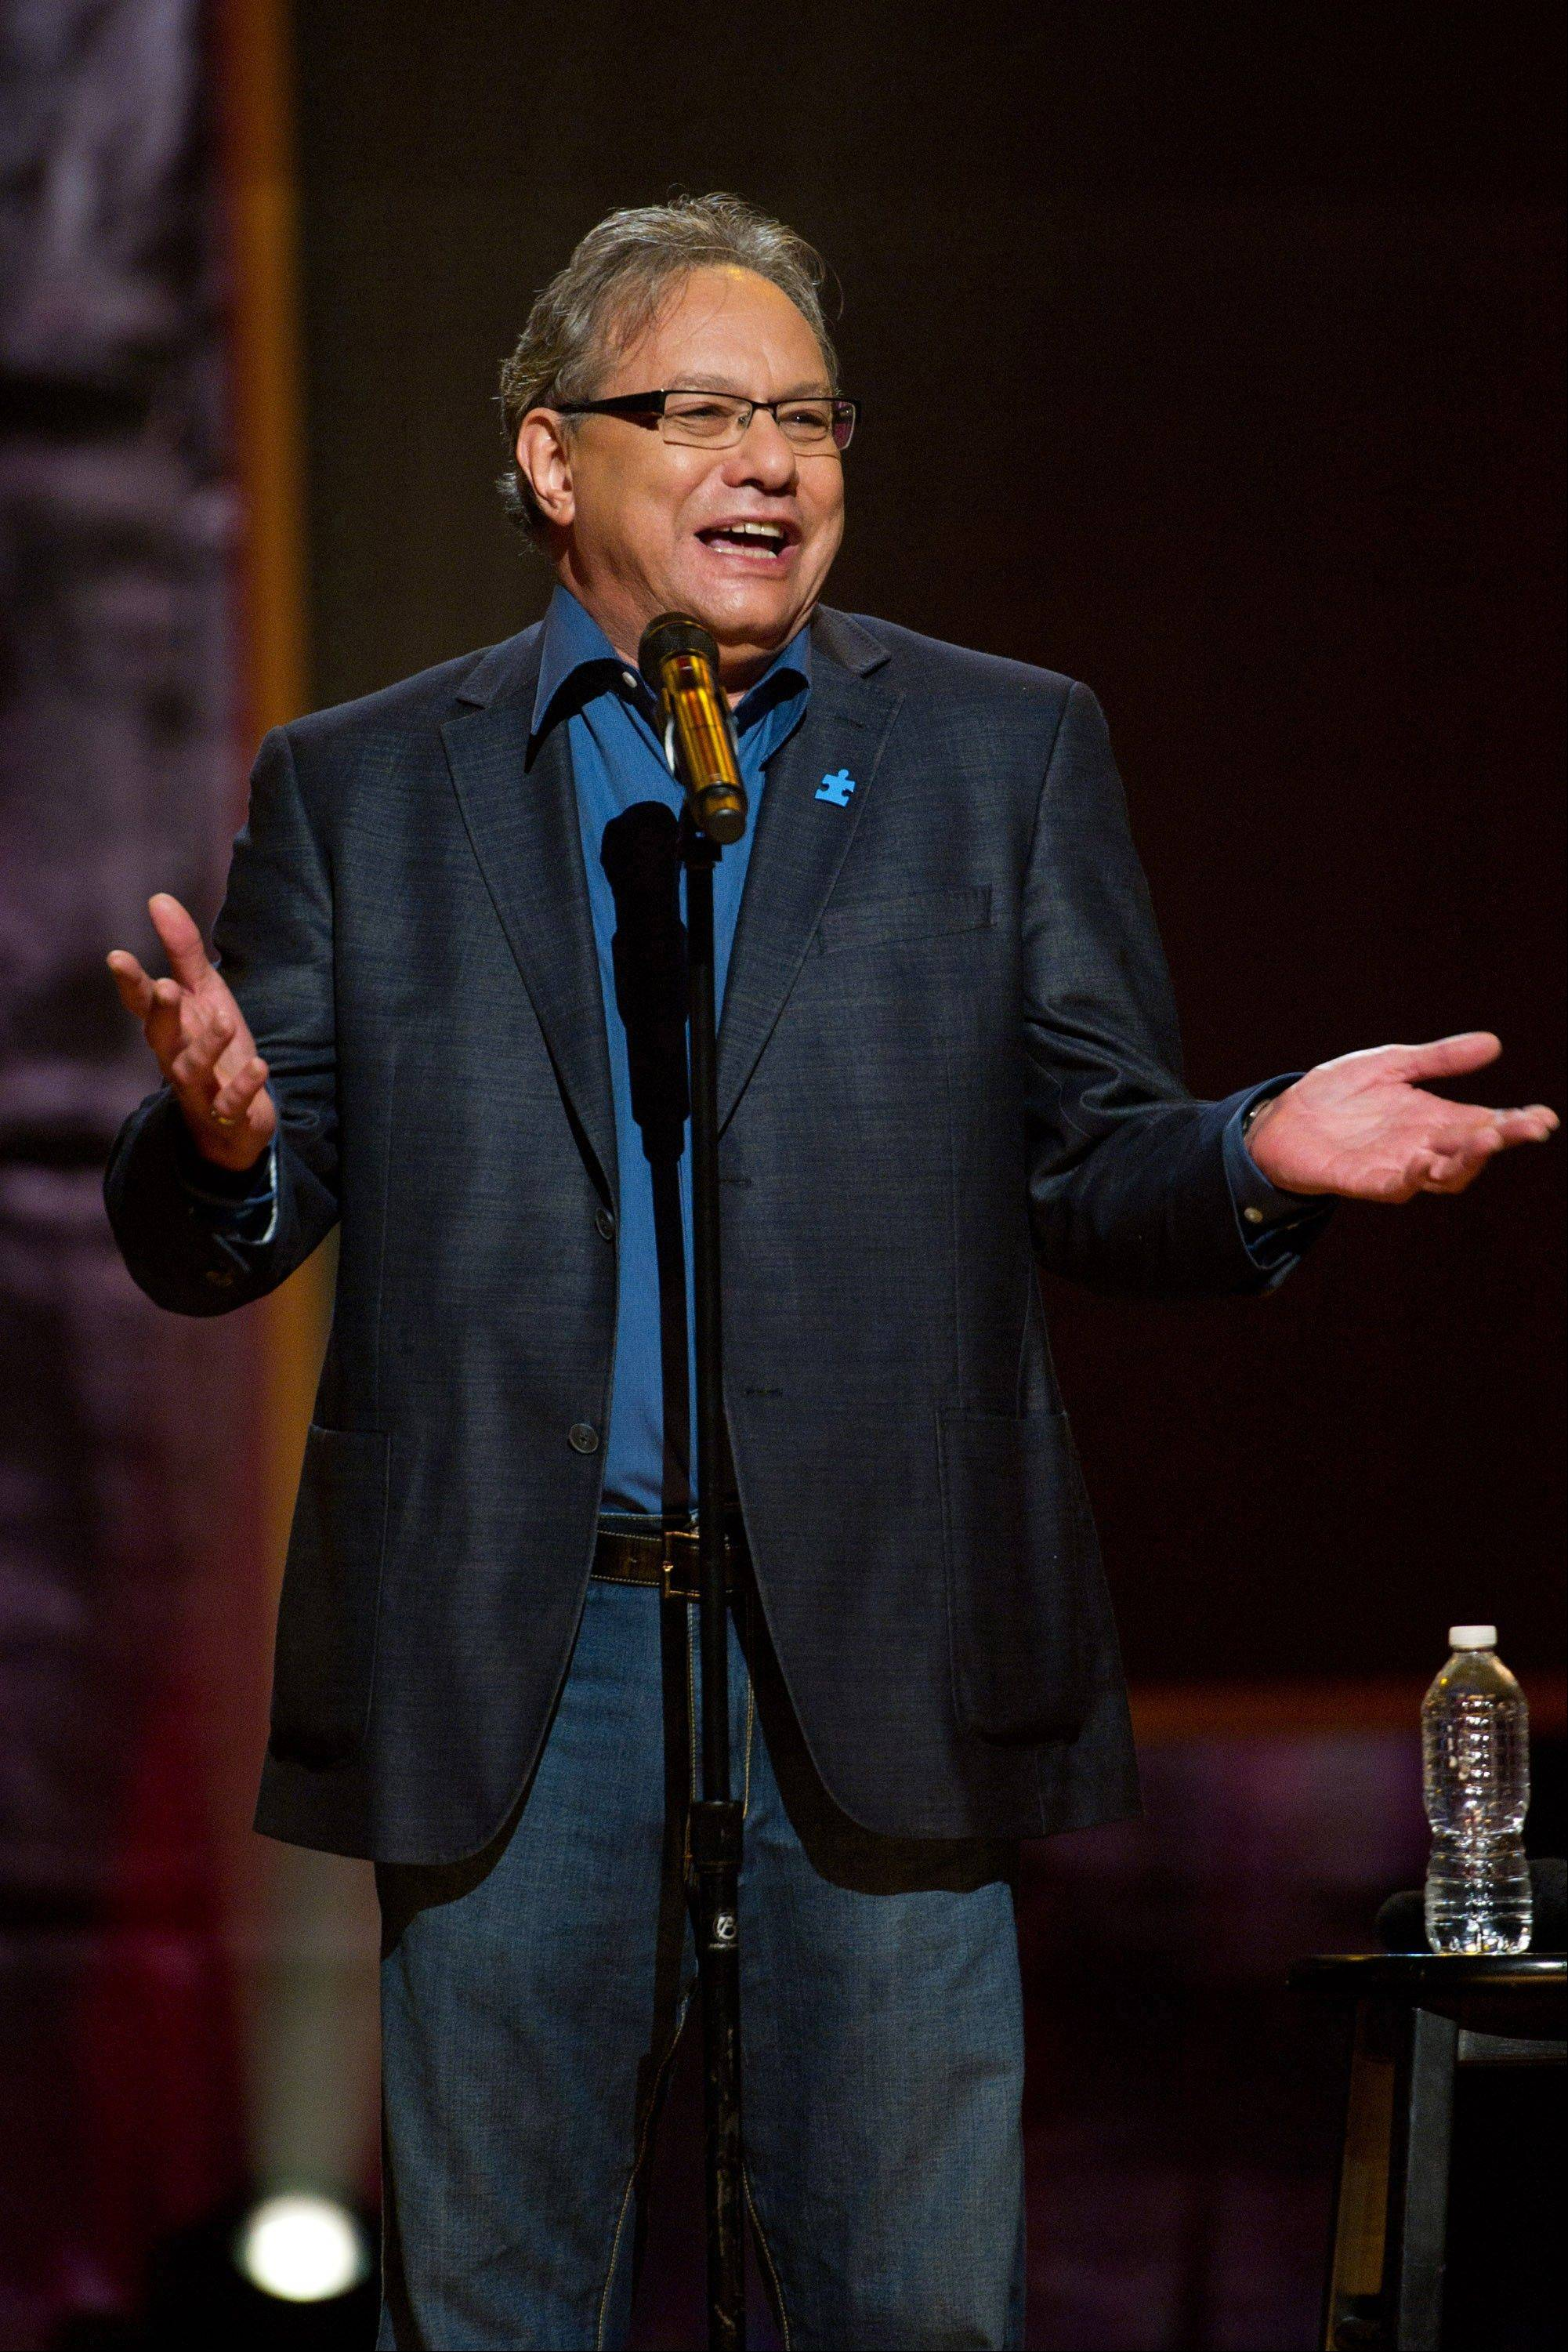 Comedian Lewis Black is set to perform at the Genesee Theatre in Waukegan on Saturday, May 11.